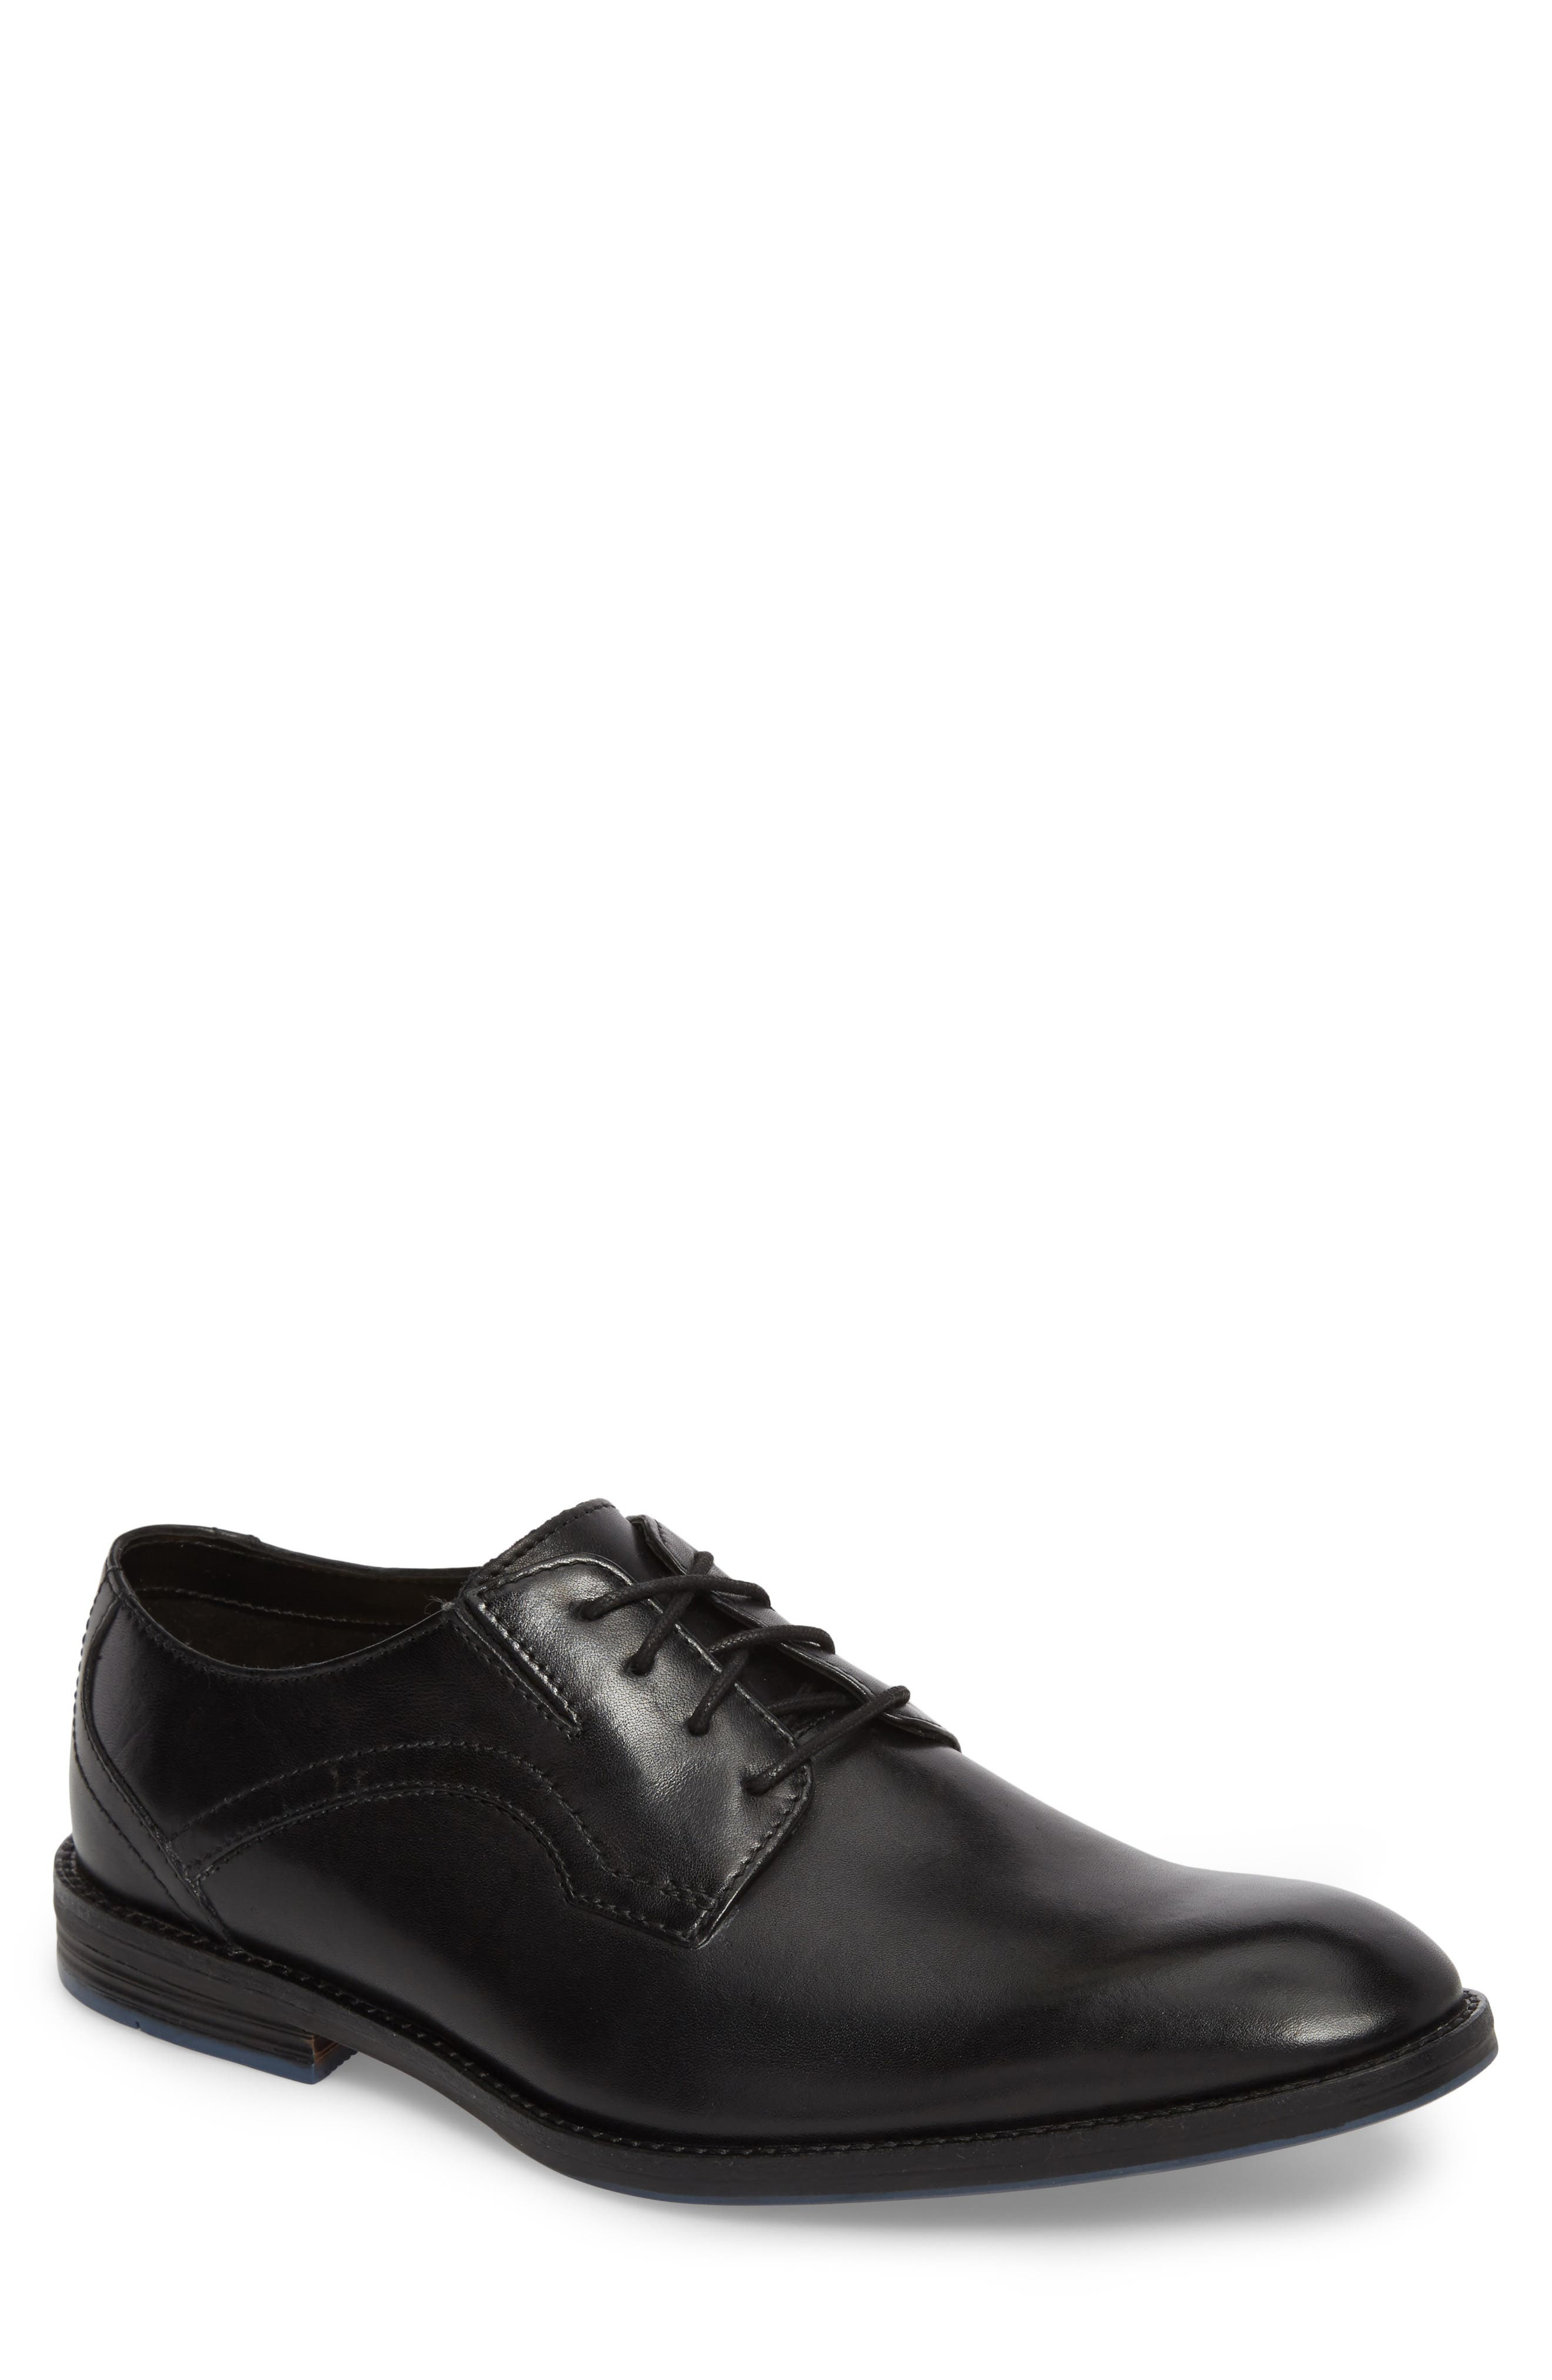 Clarks<sup>®</sup> Prangley Walk Plain Toe Derby,                             Main thumbnail 1, color,                             Black Leather